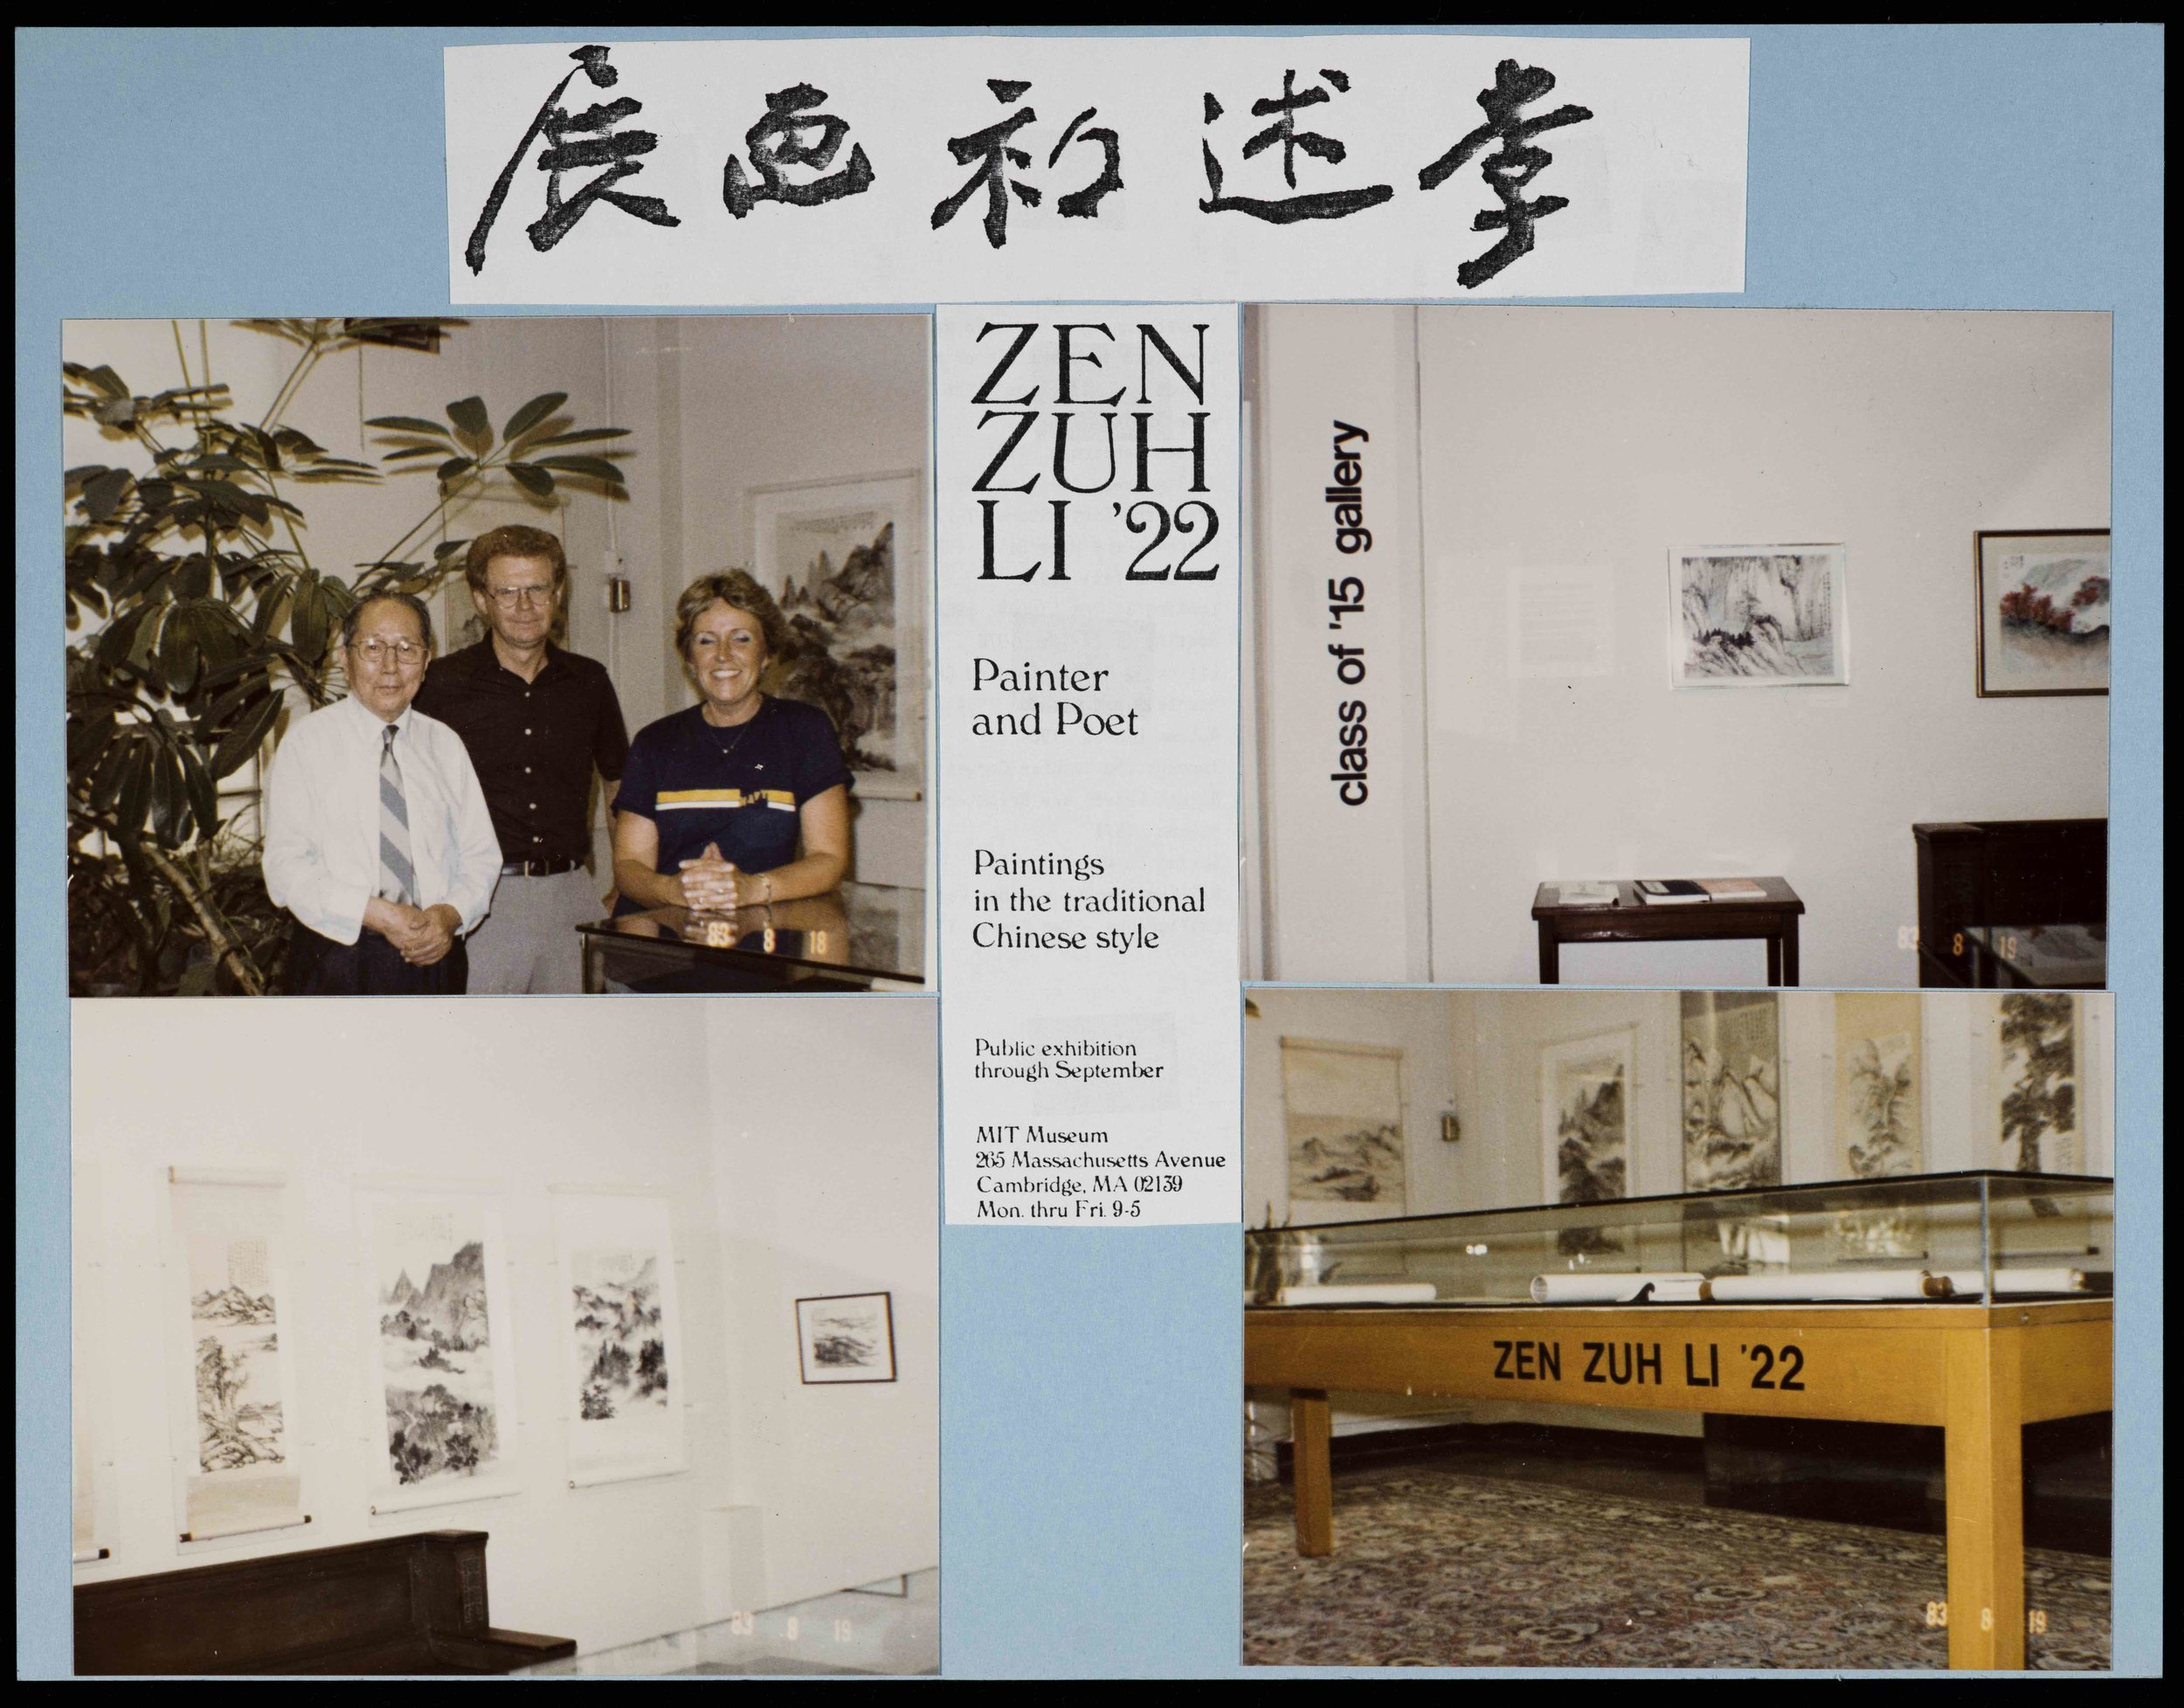 """Zen Zuh Li '22: Painter and Poet, Paintings in the Traditional Chinese Style.""  Courtesy MIT Museum."